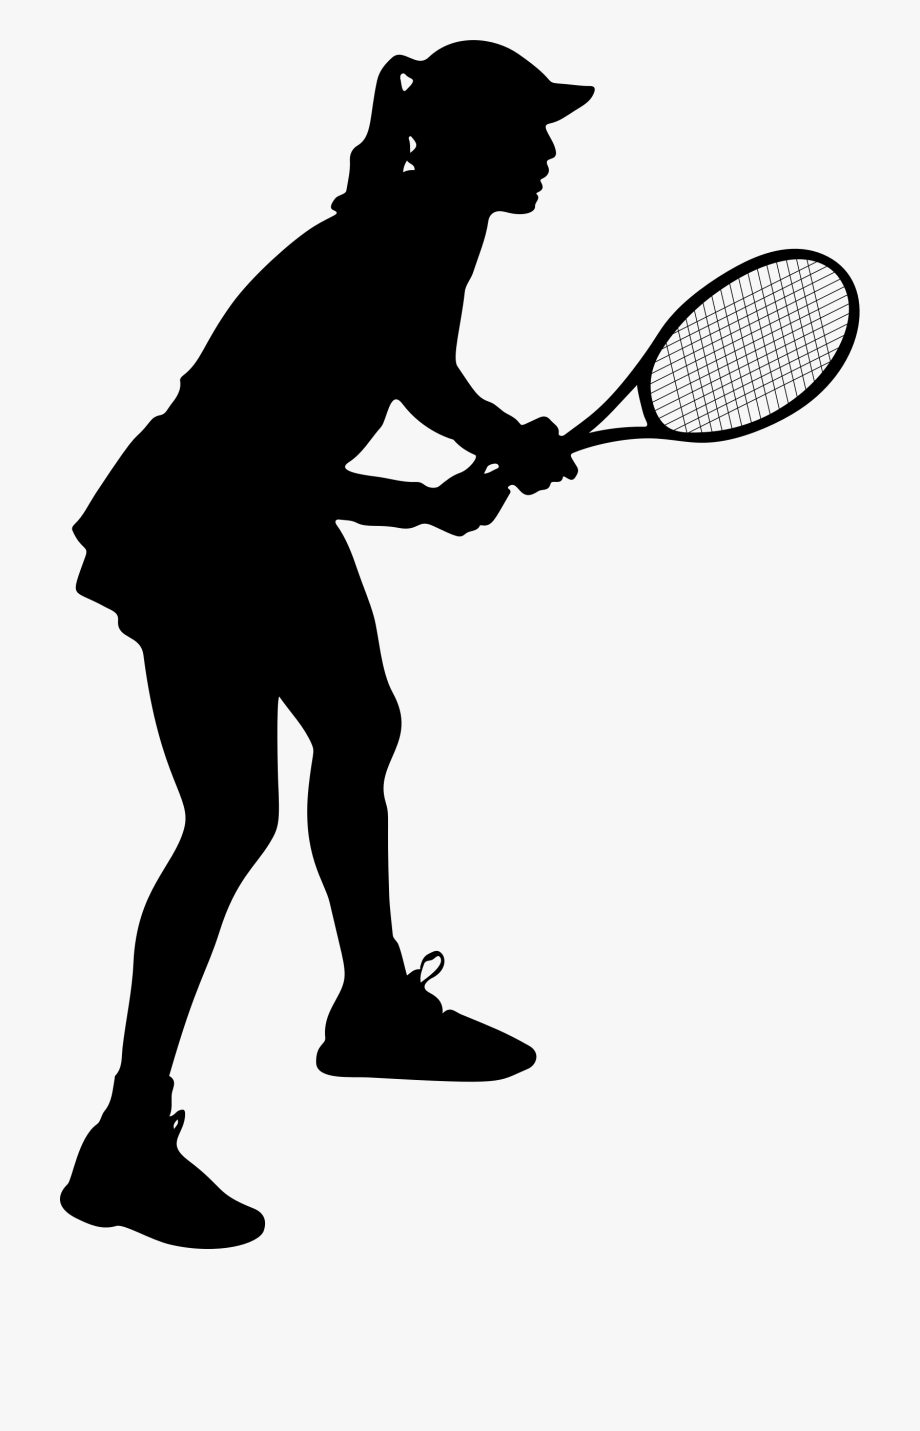 image free download Woman free cliparts on. Tennis player clipart